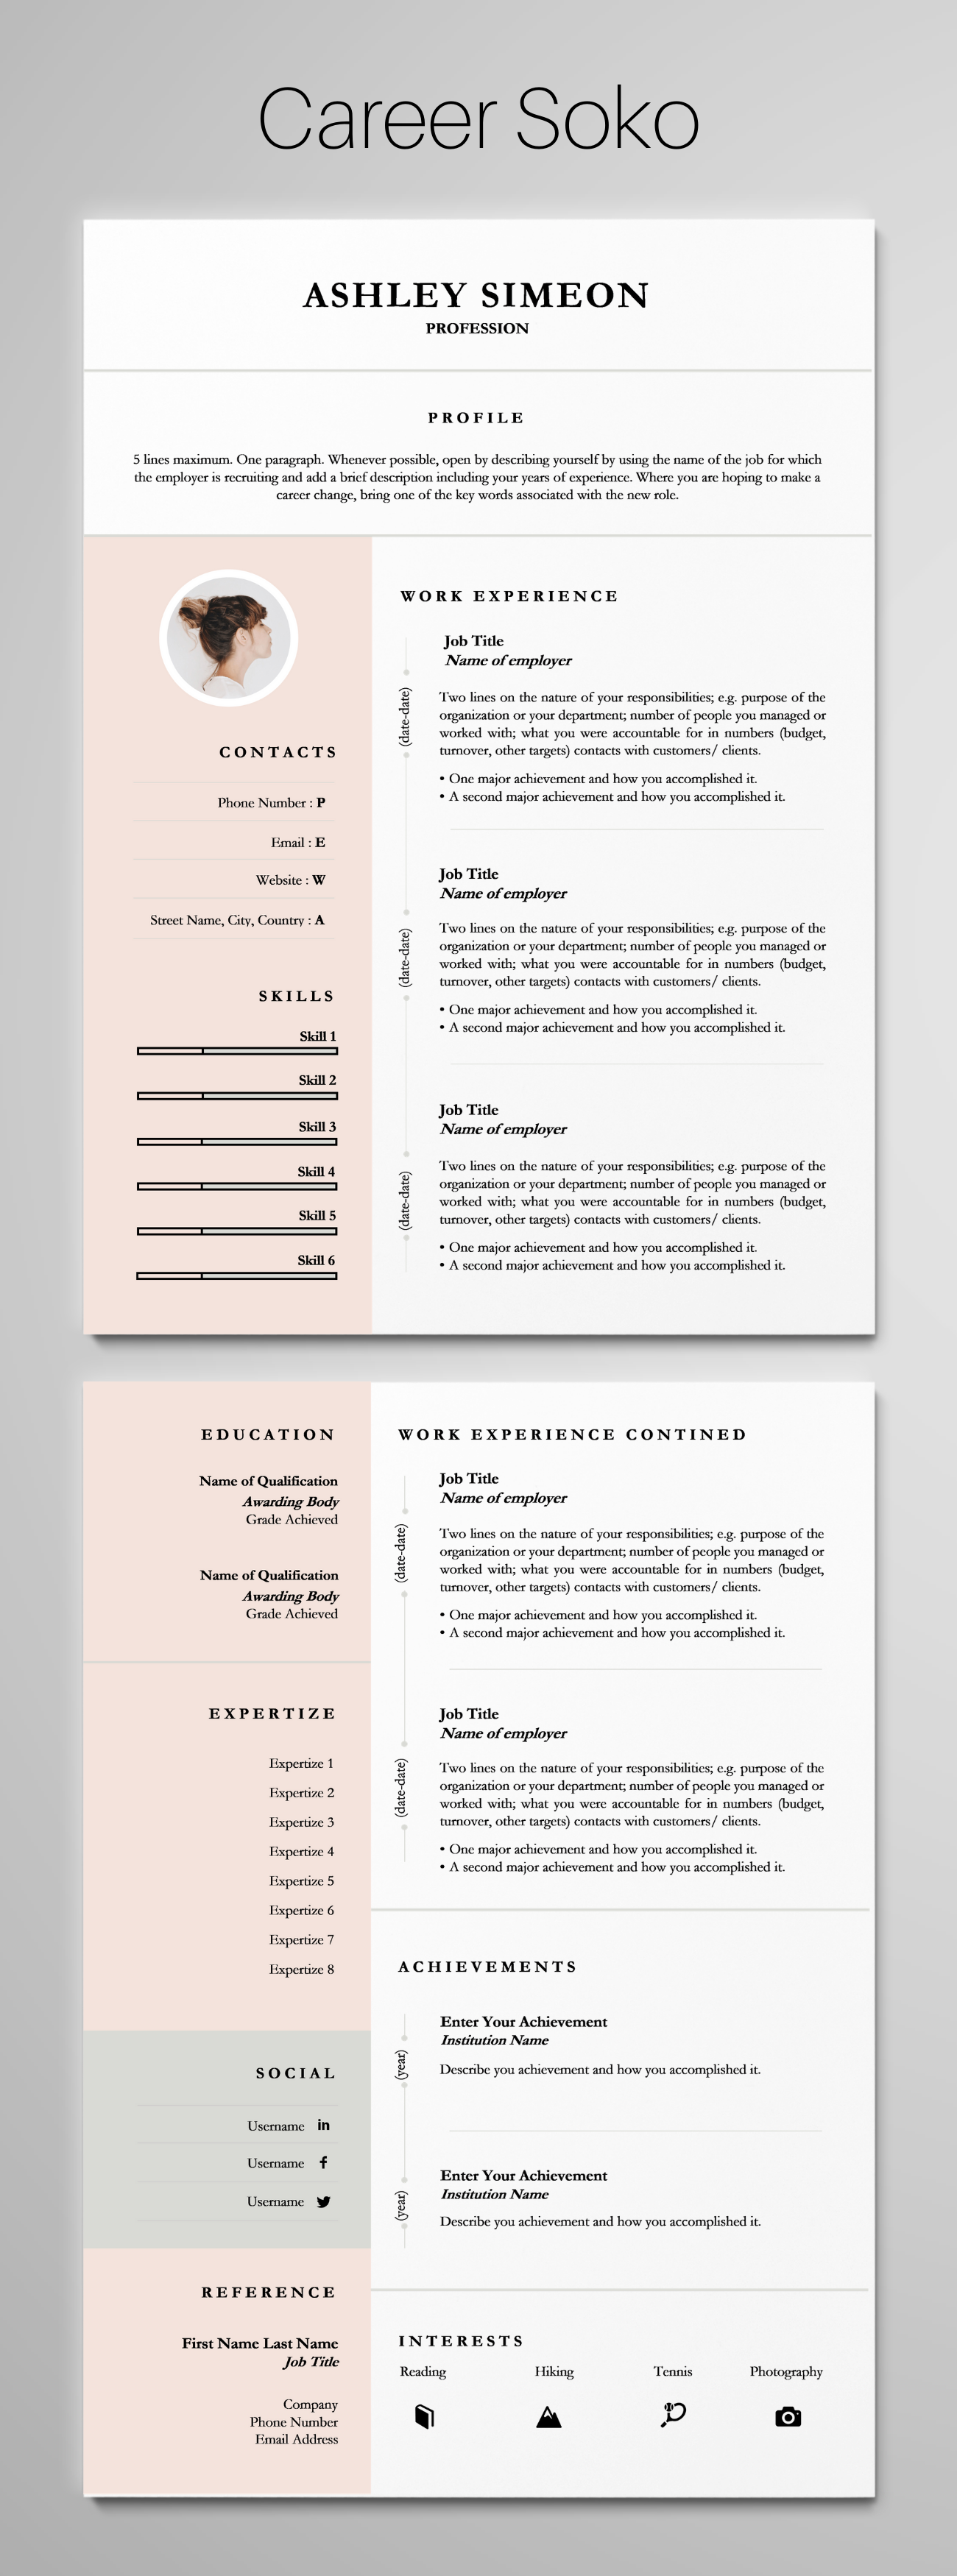 resume template word cv curriculum vitae 2 page career objective for manufacturing engineer sample format pdf download free best document